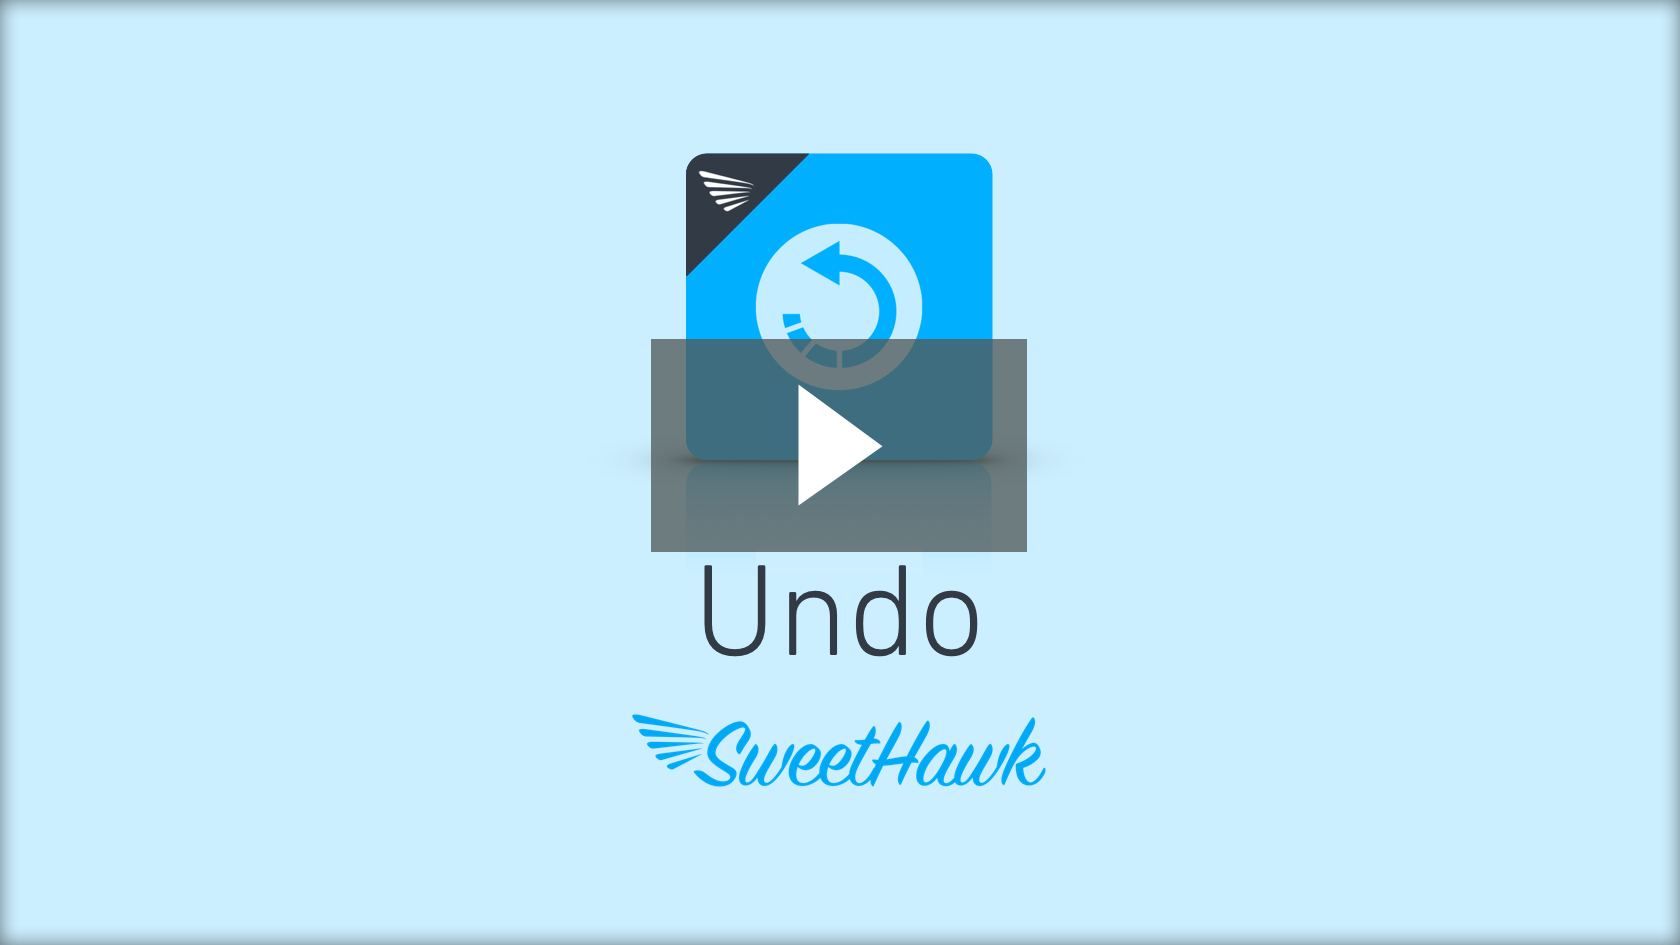 Watch the Undo app video